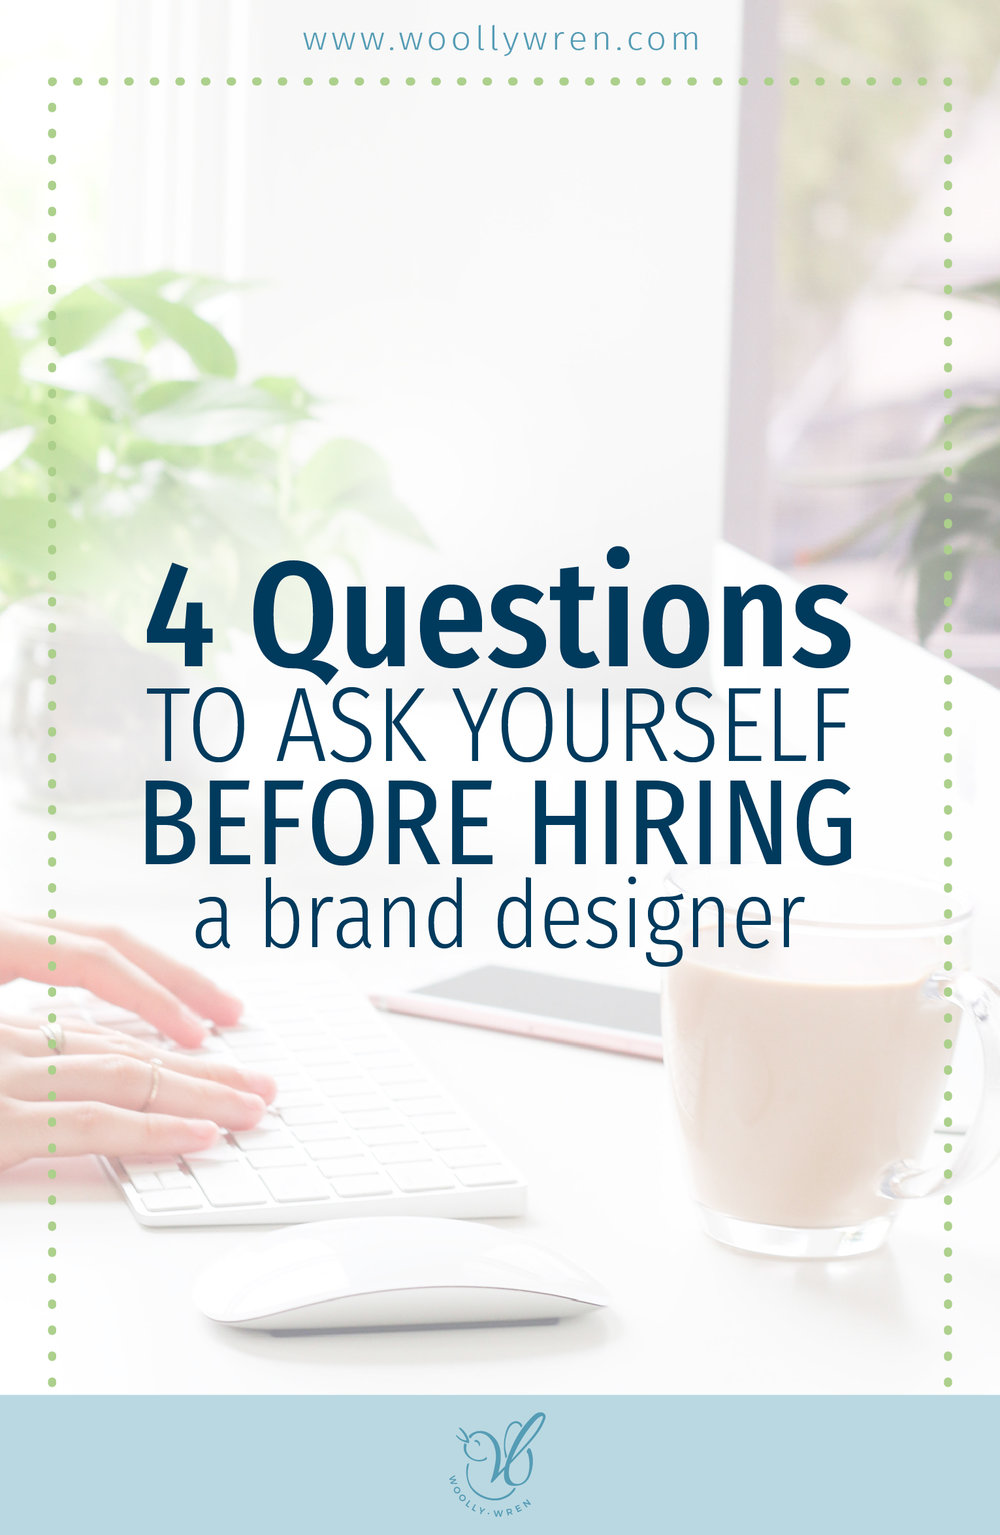 4 questions to ask yourself before hiring a brand designer